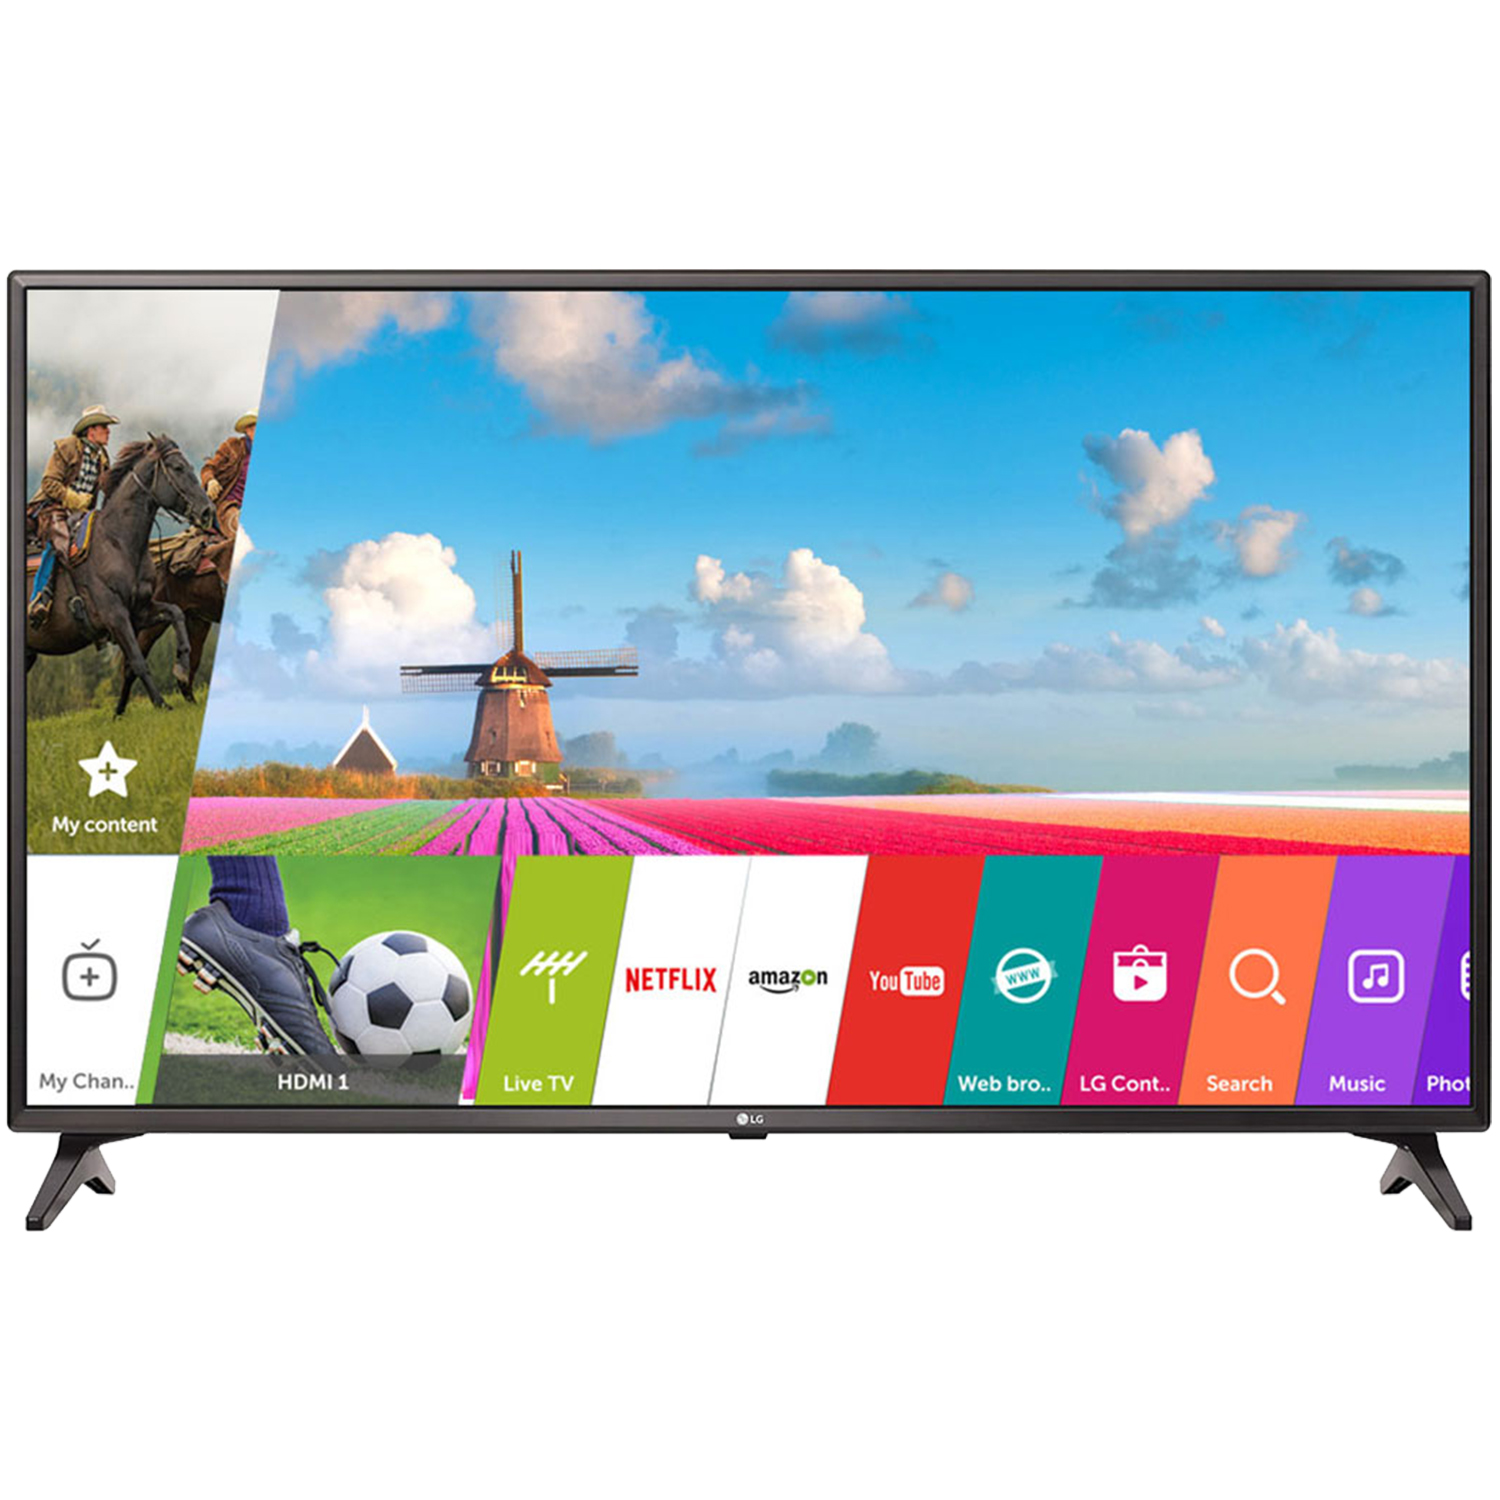 Smart & UHD, LG 43 inch 43LJ554T Full HD Smart Led TV